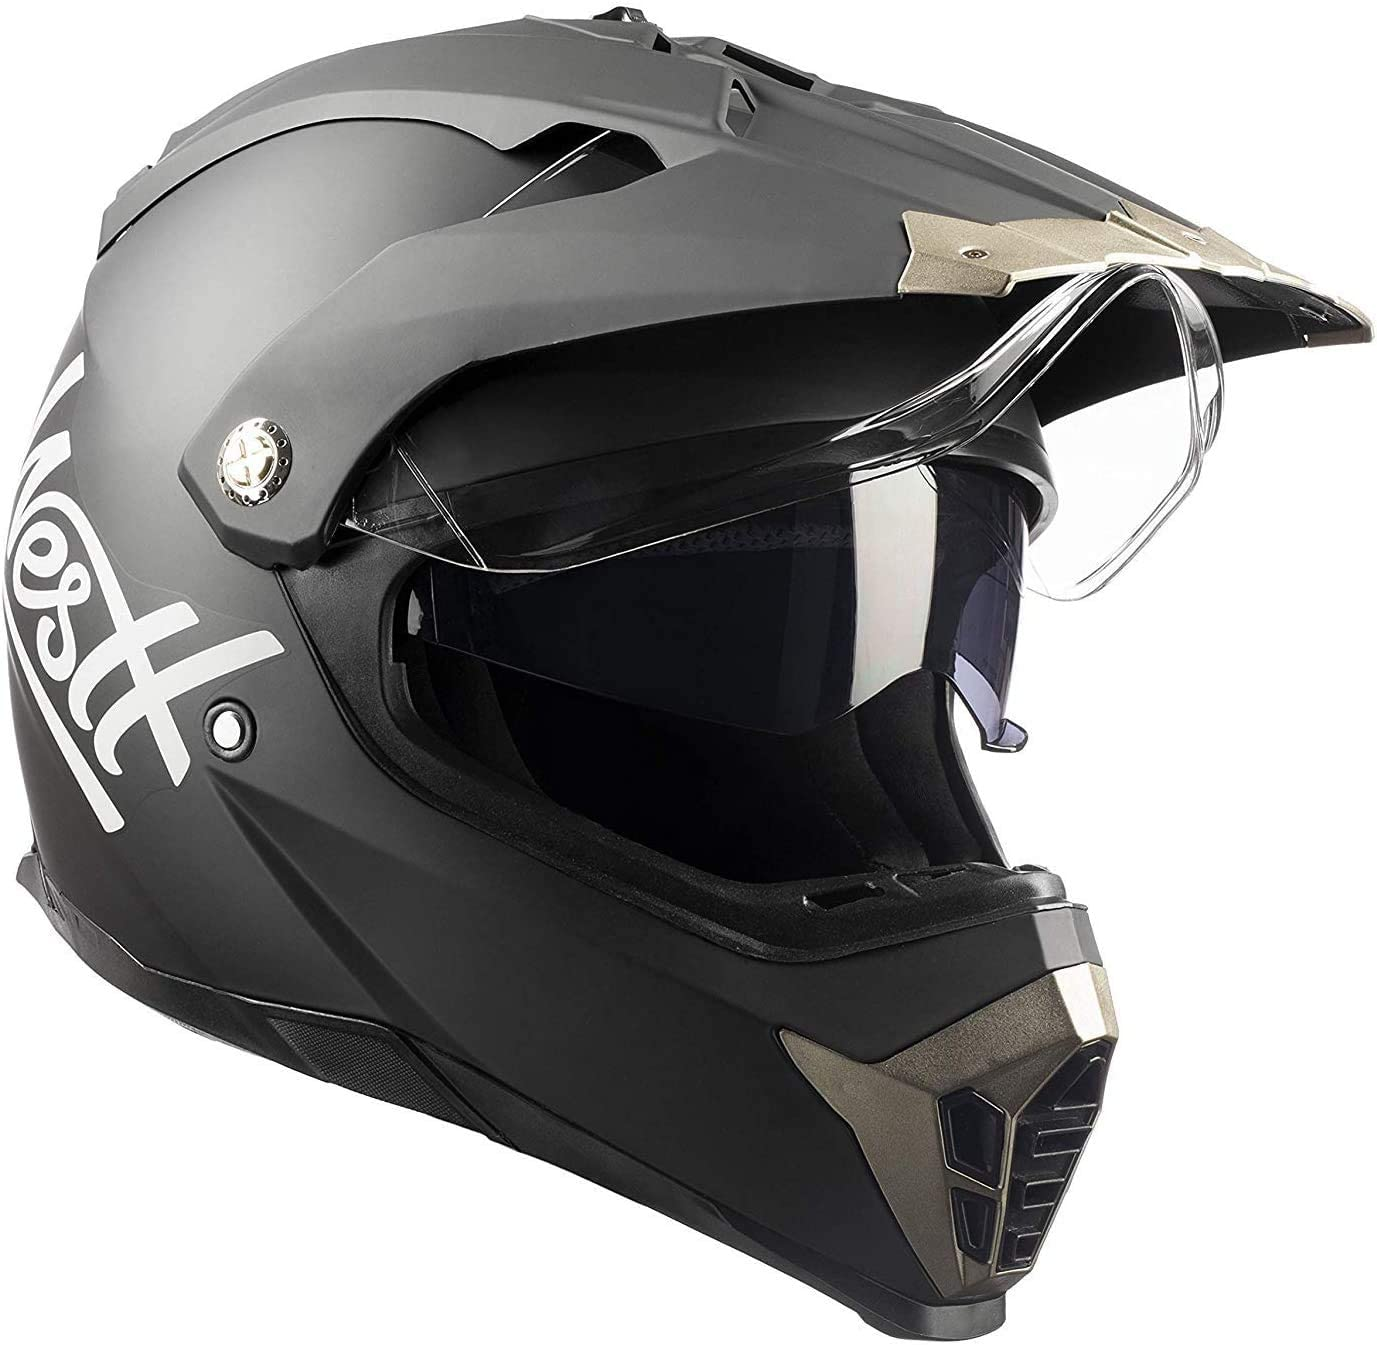 WESTT Cross Dirt Bike Helmet